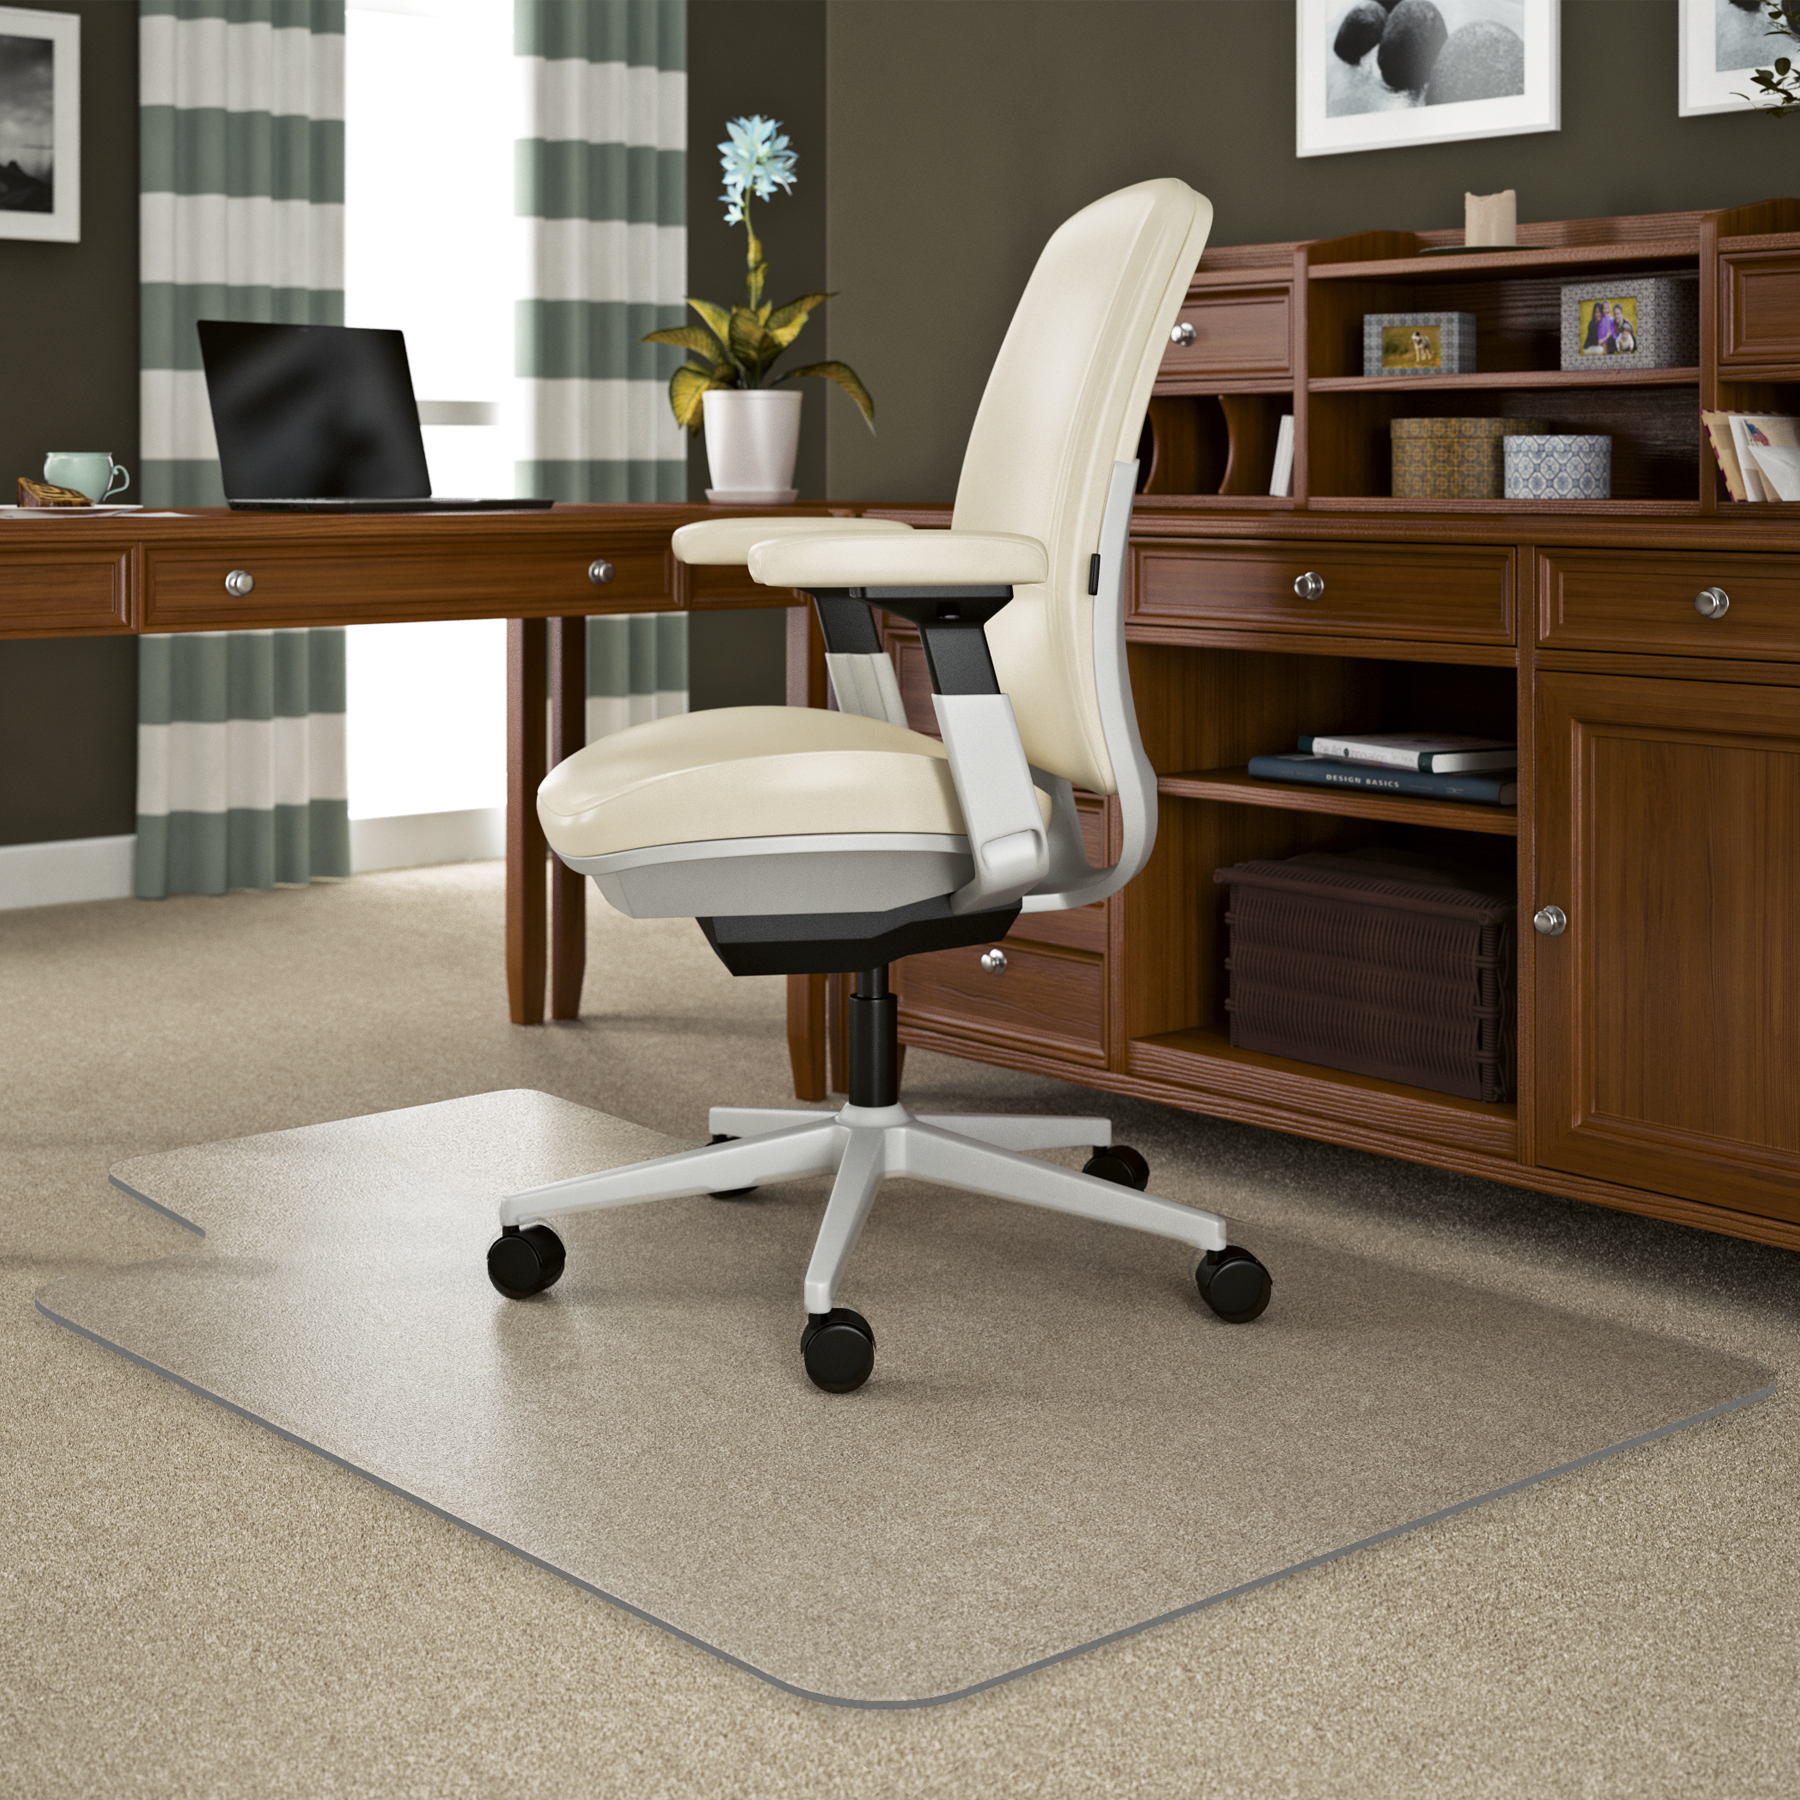 Chair Mat For Thick Carpet Fresh Desk Chair Mats Structuralinsulatedpanels Co